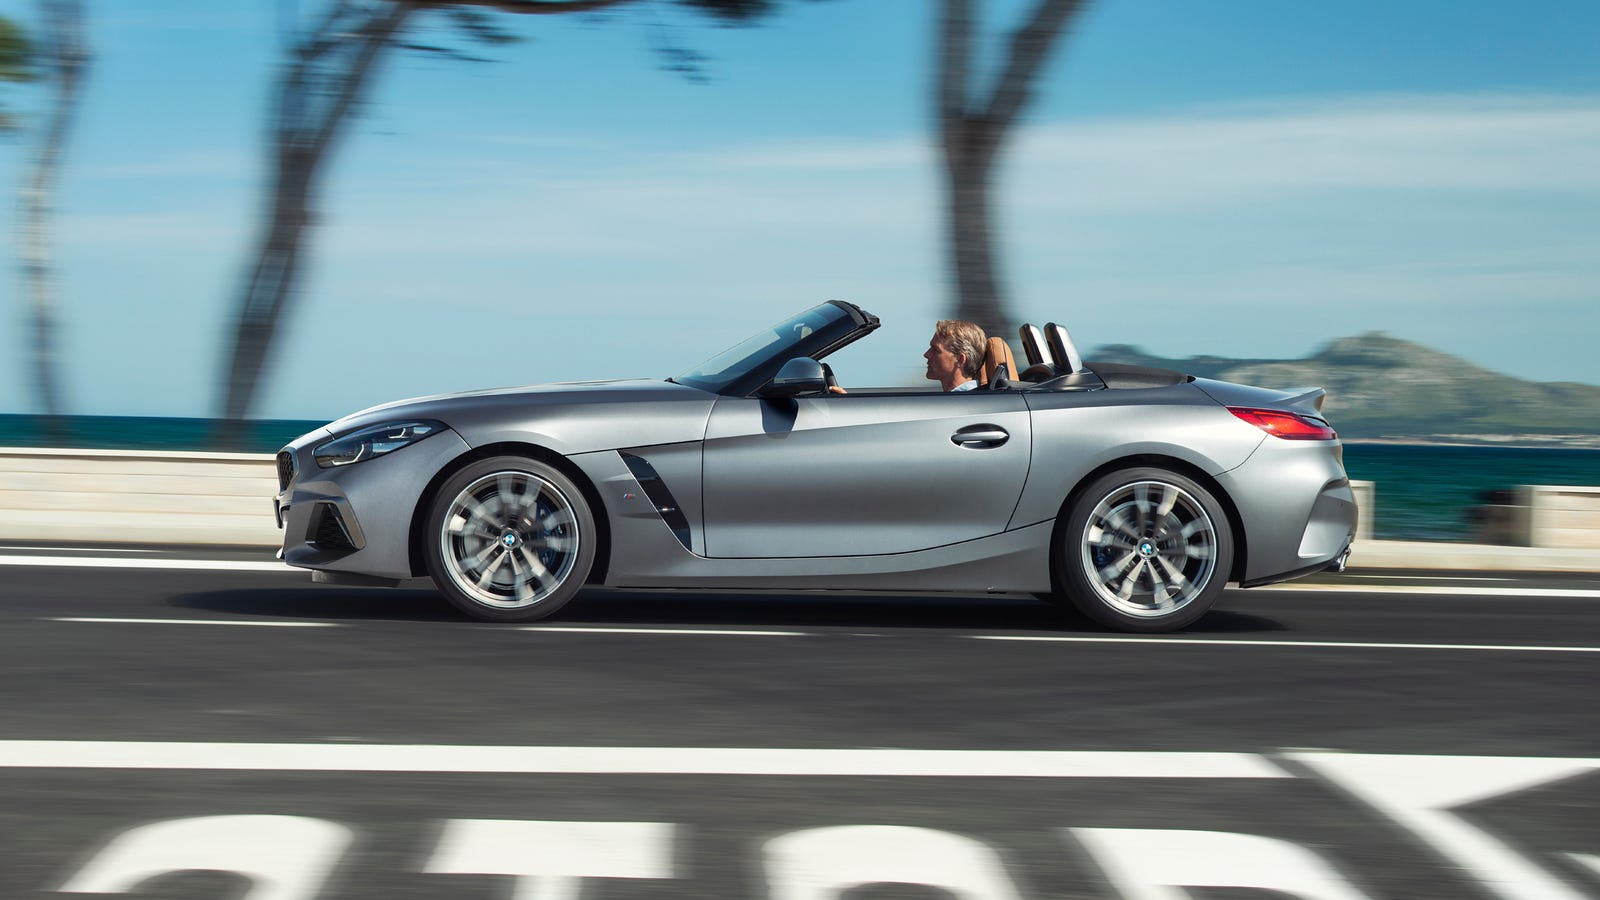 The 2019 Bmw Z4 Sdrive30i Brings You A 255 Hp Turbocharged